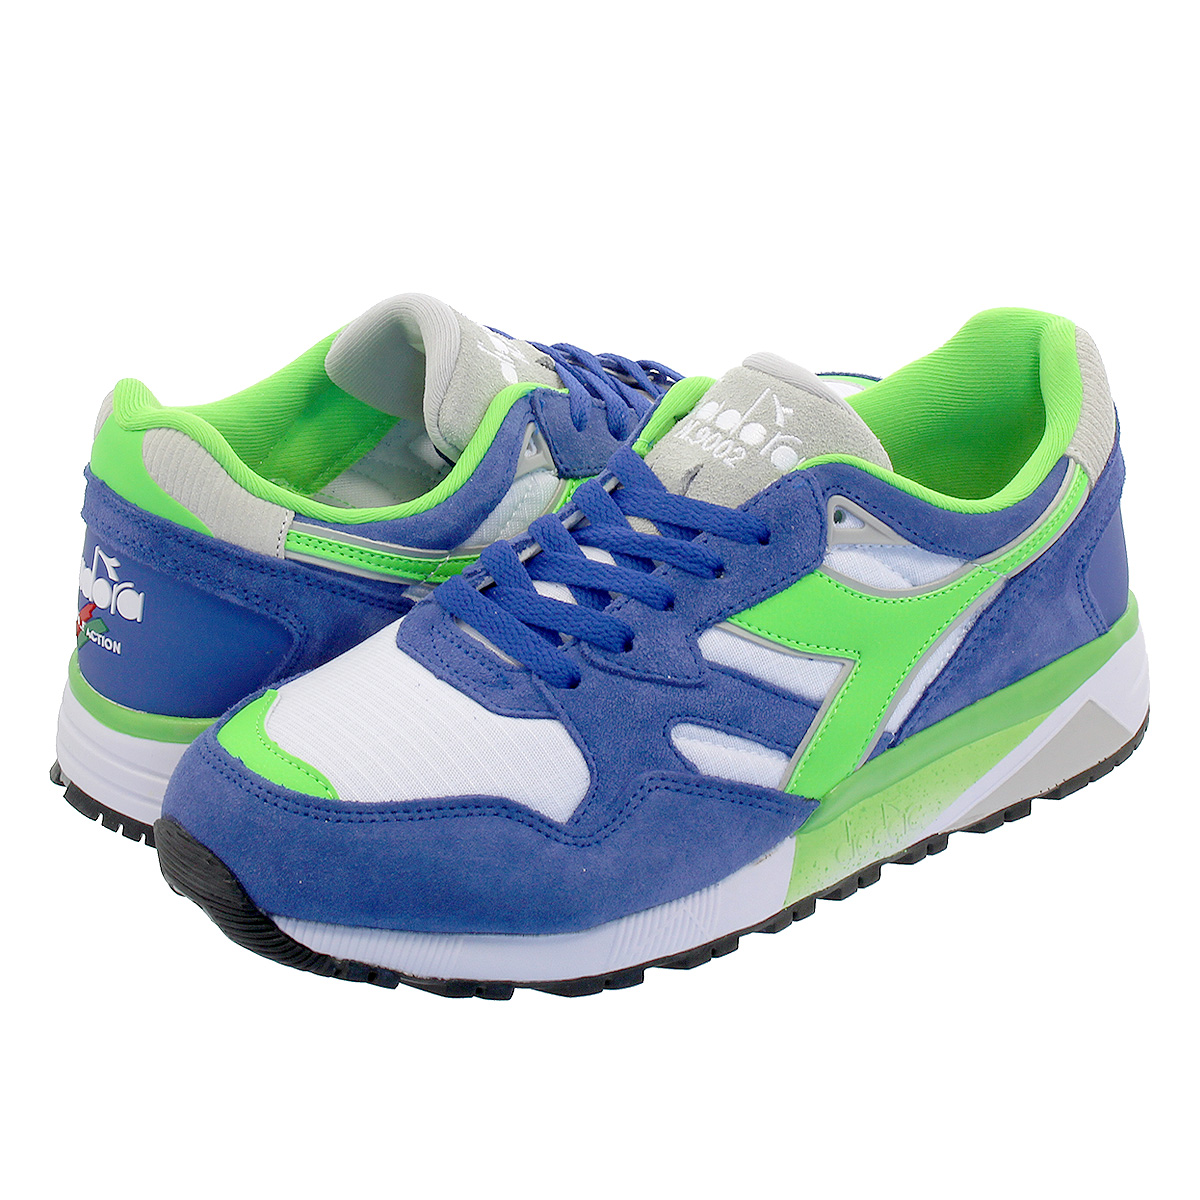 DIADORA N9002 ディアドラ N9002 IMPERIAL BLUE/WHITE 173073-c3940